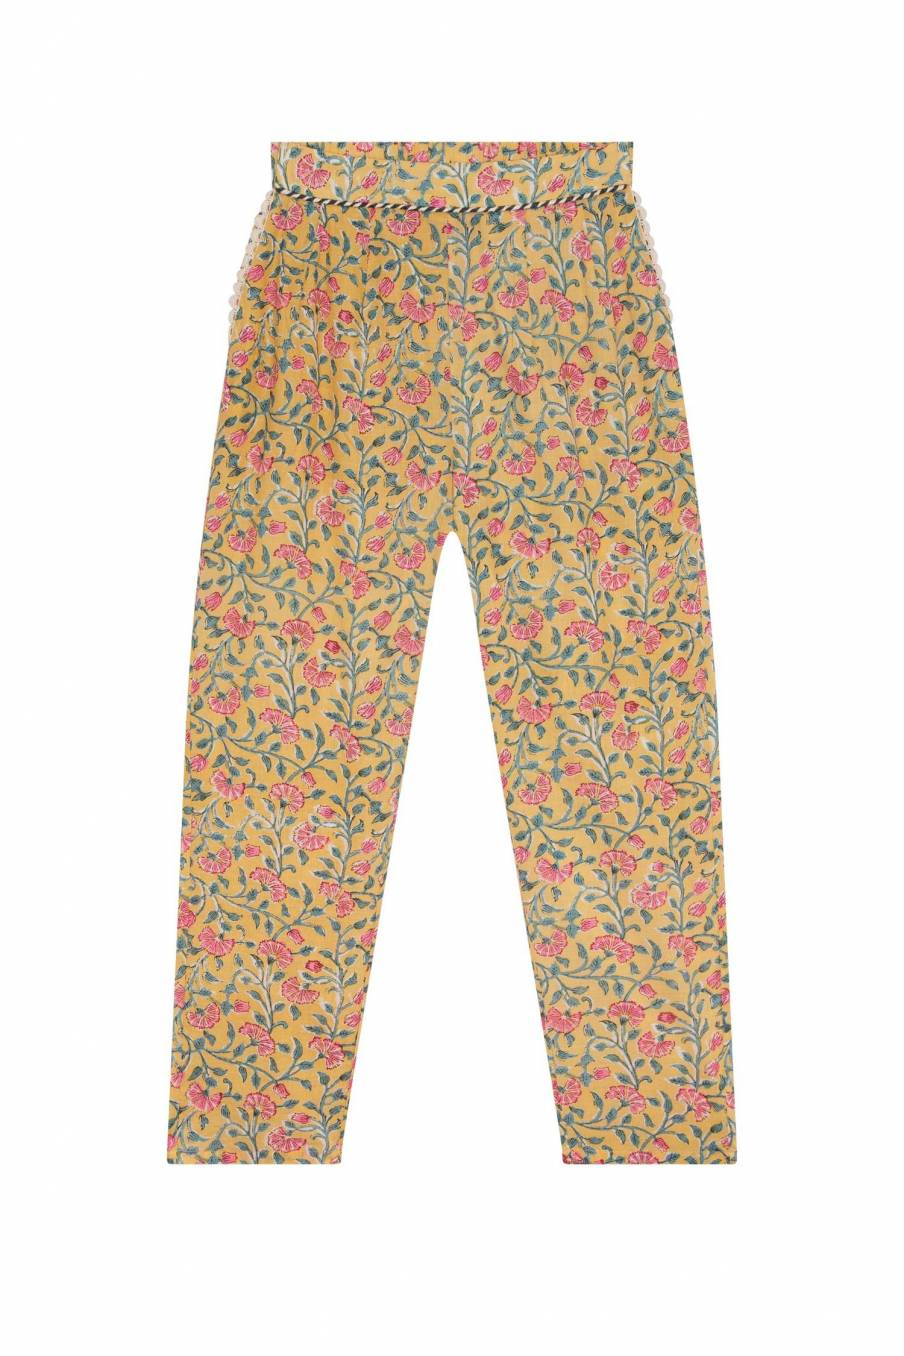 Pants Chama Lemon Flowers